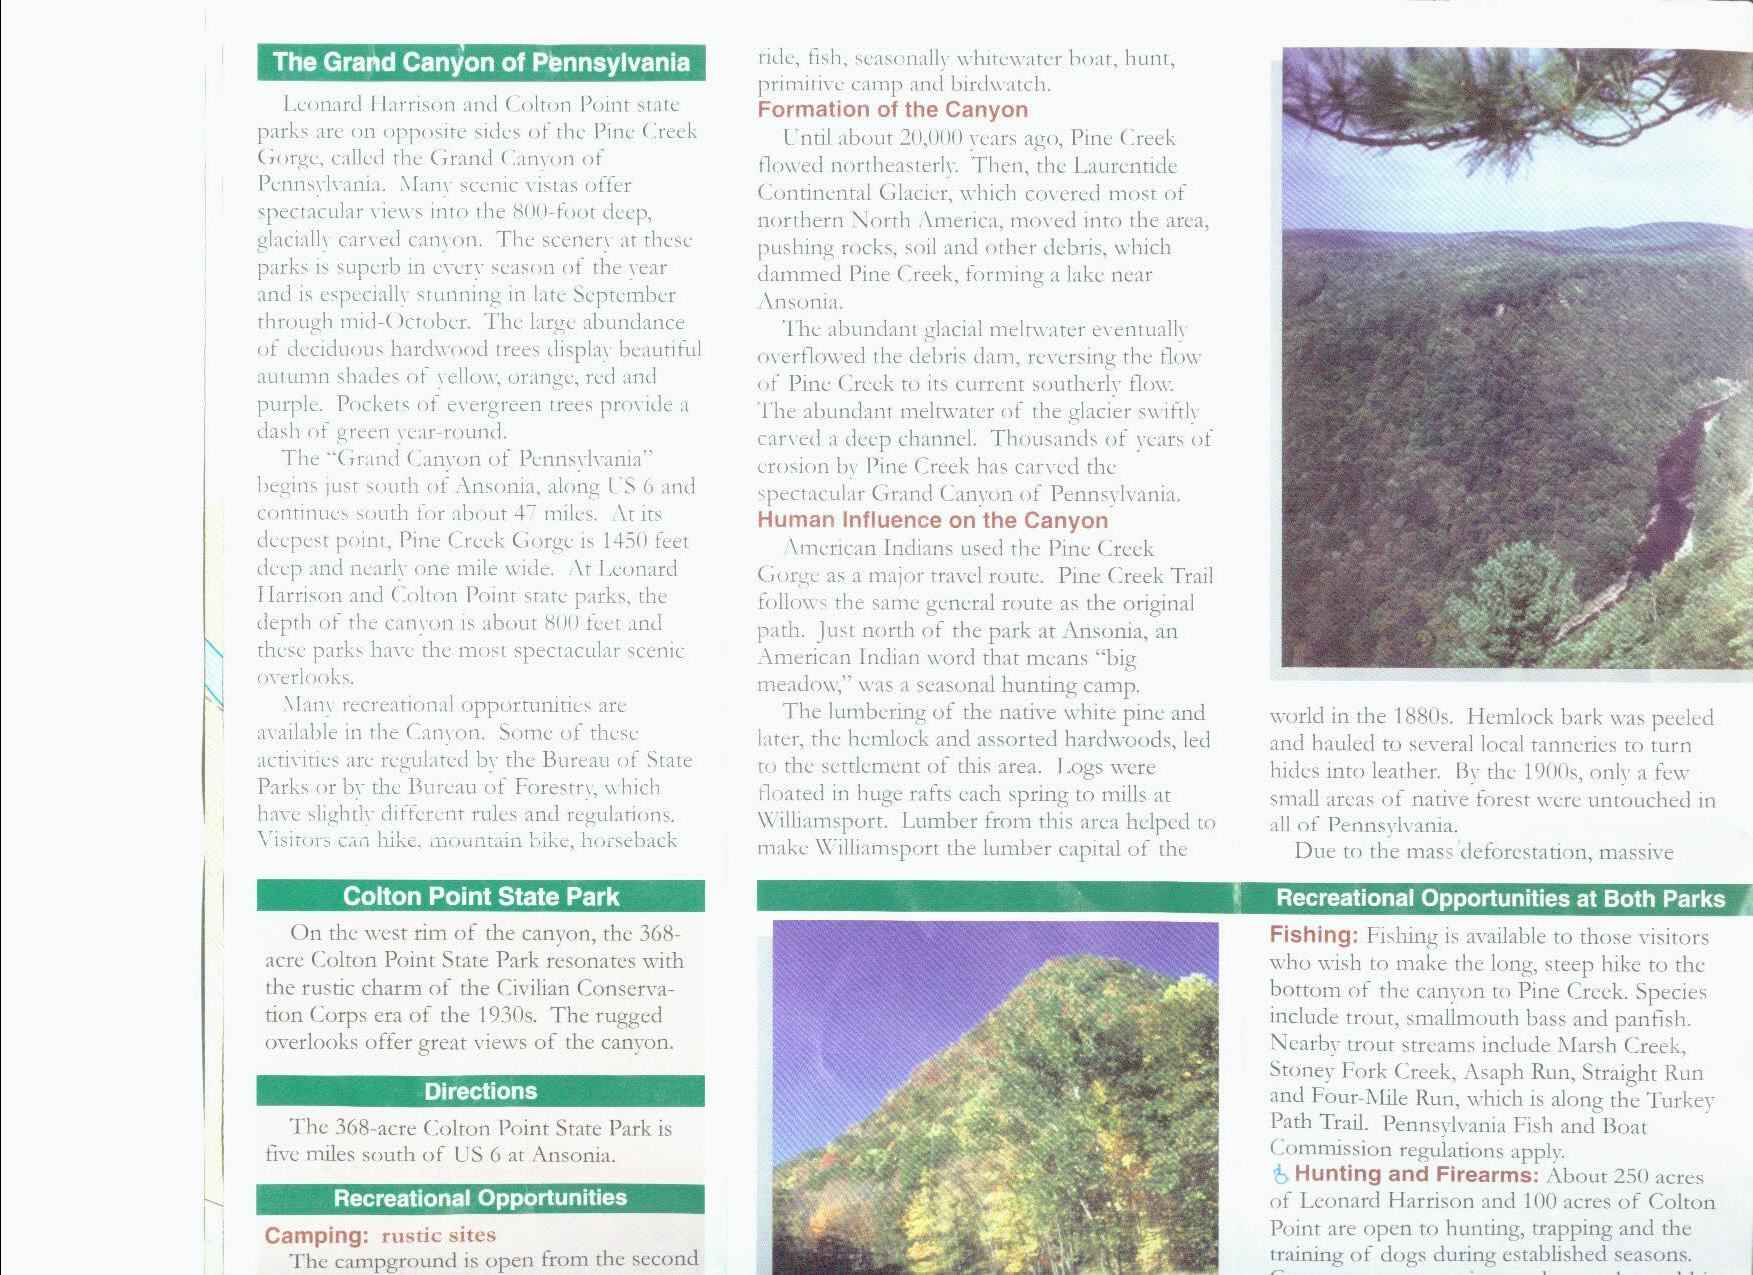 Pennsylvania Grand Canyon Brochure Part 1